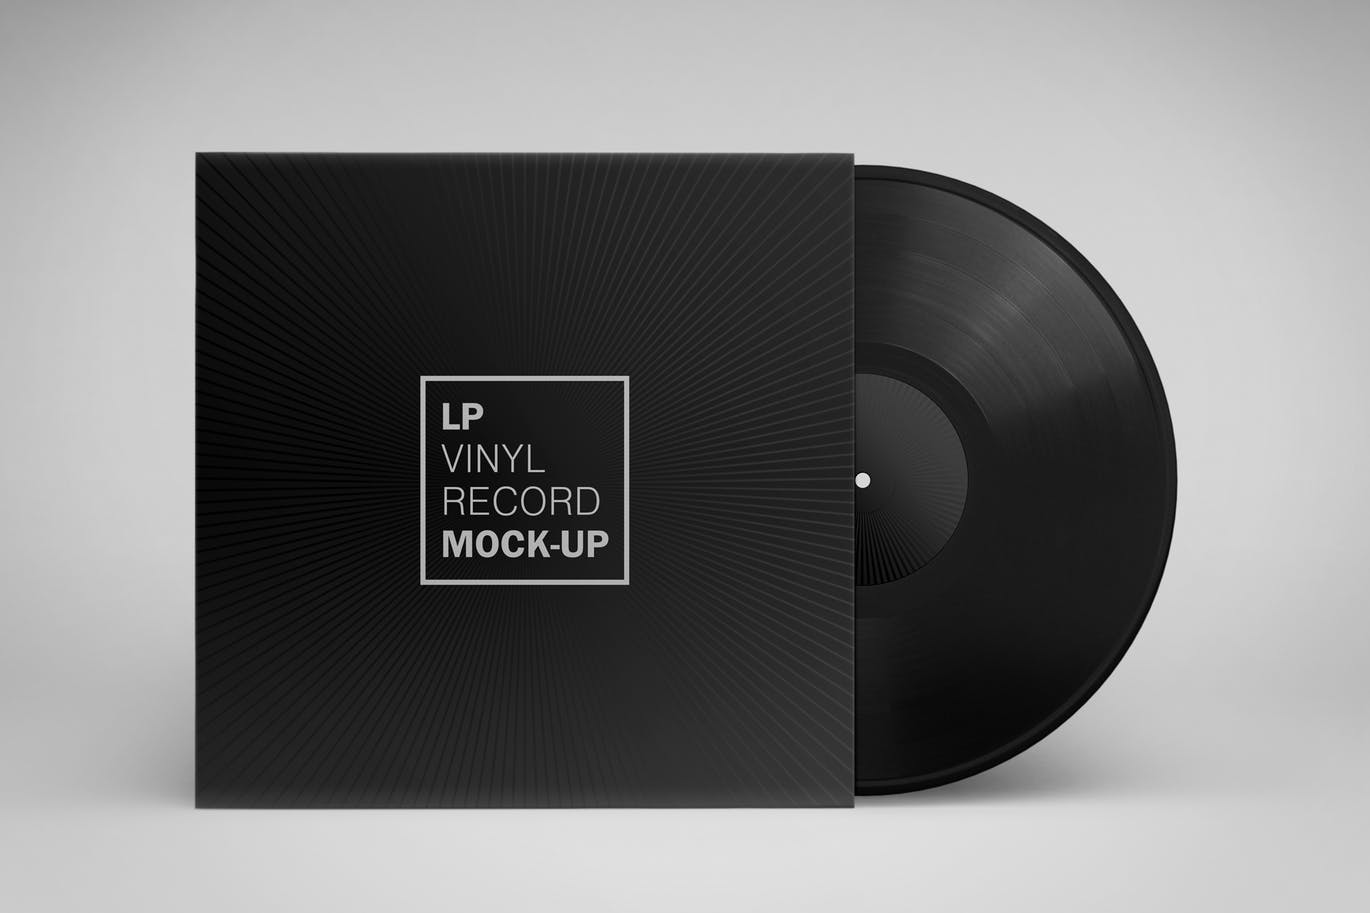 This vinyl record and cover mockup featuring a modern design come in 8 psd files with different perspectives each file contains fully layered smart objects